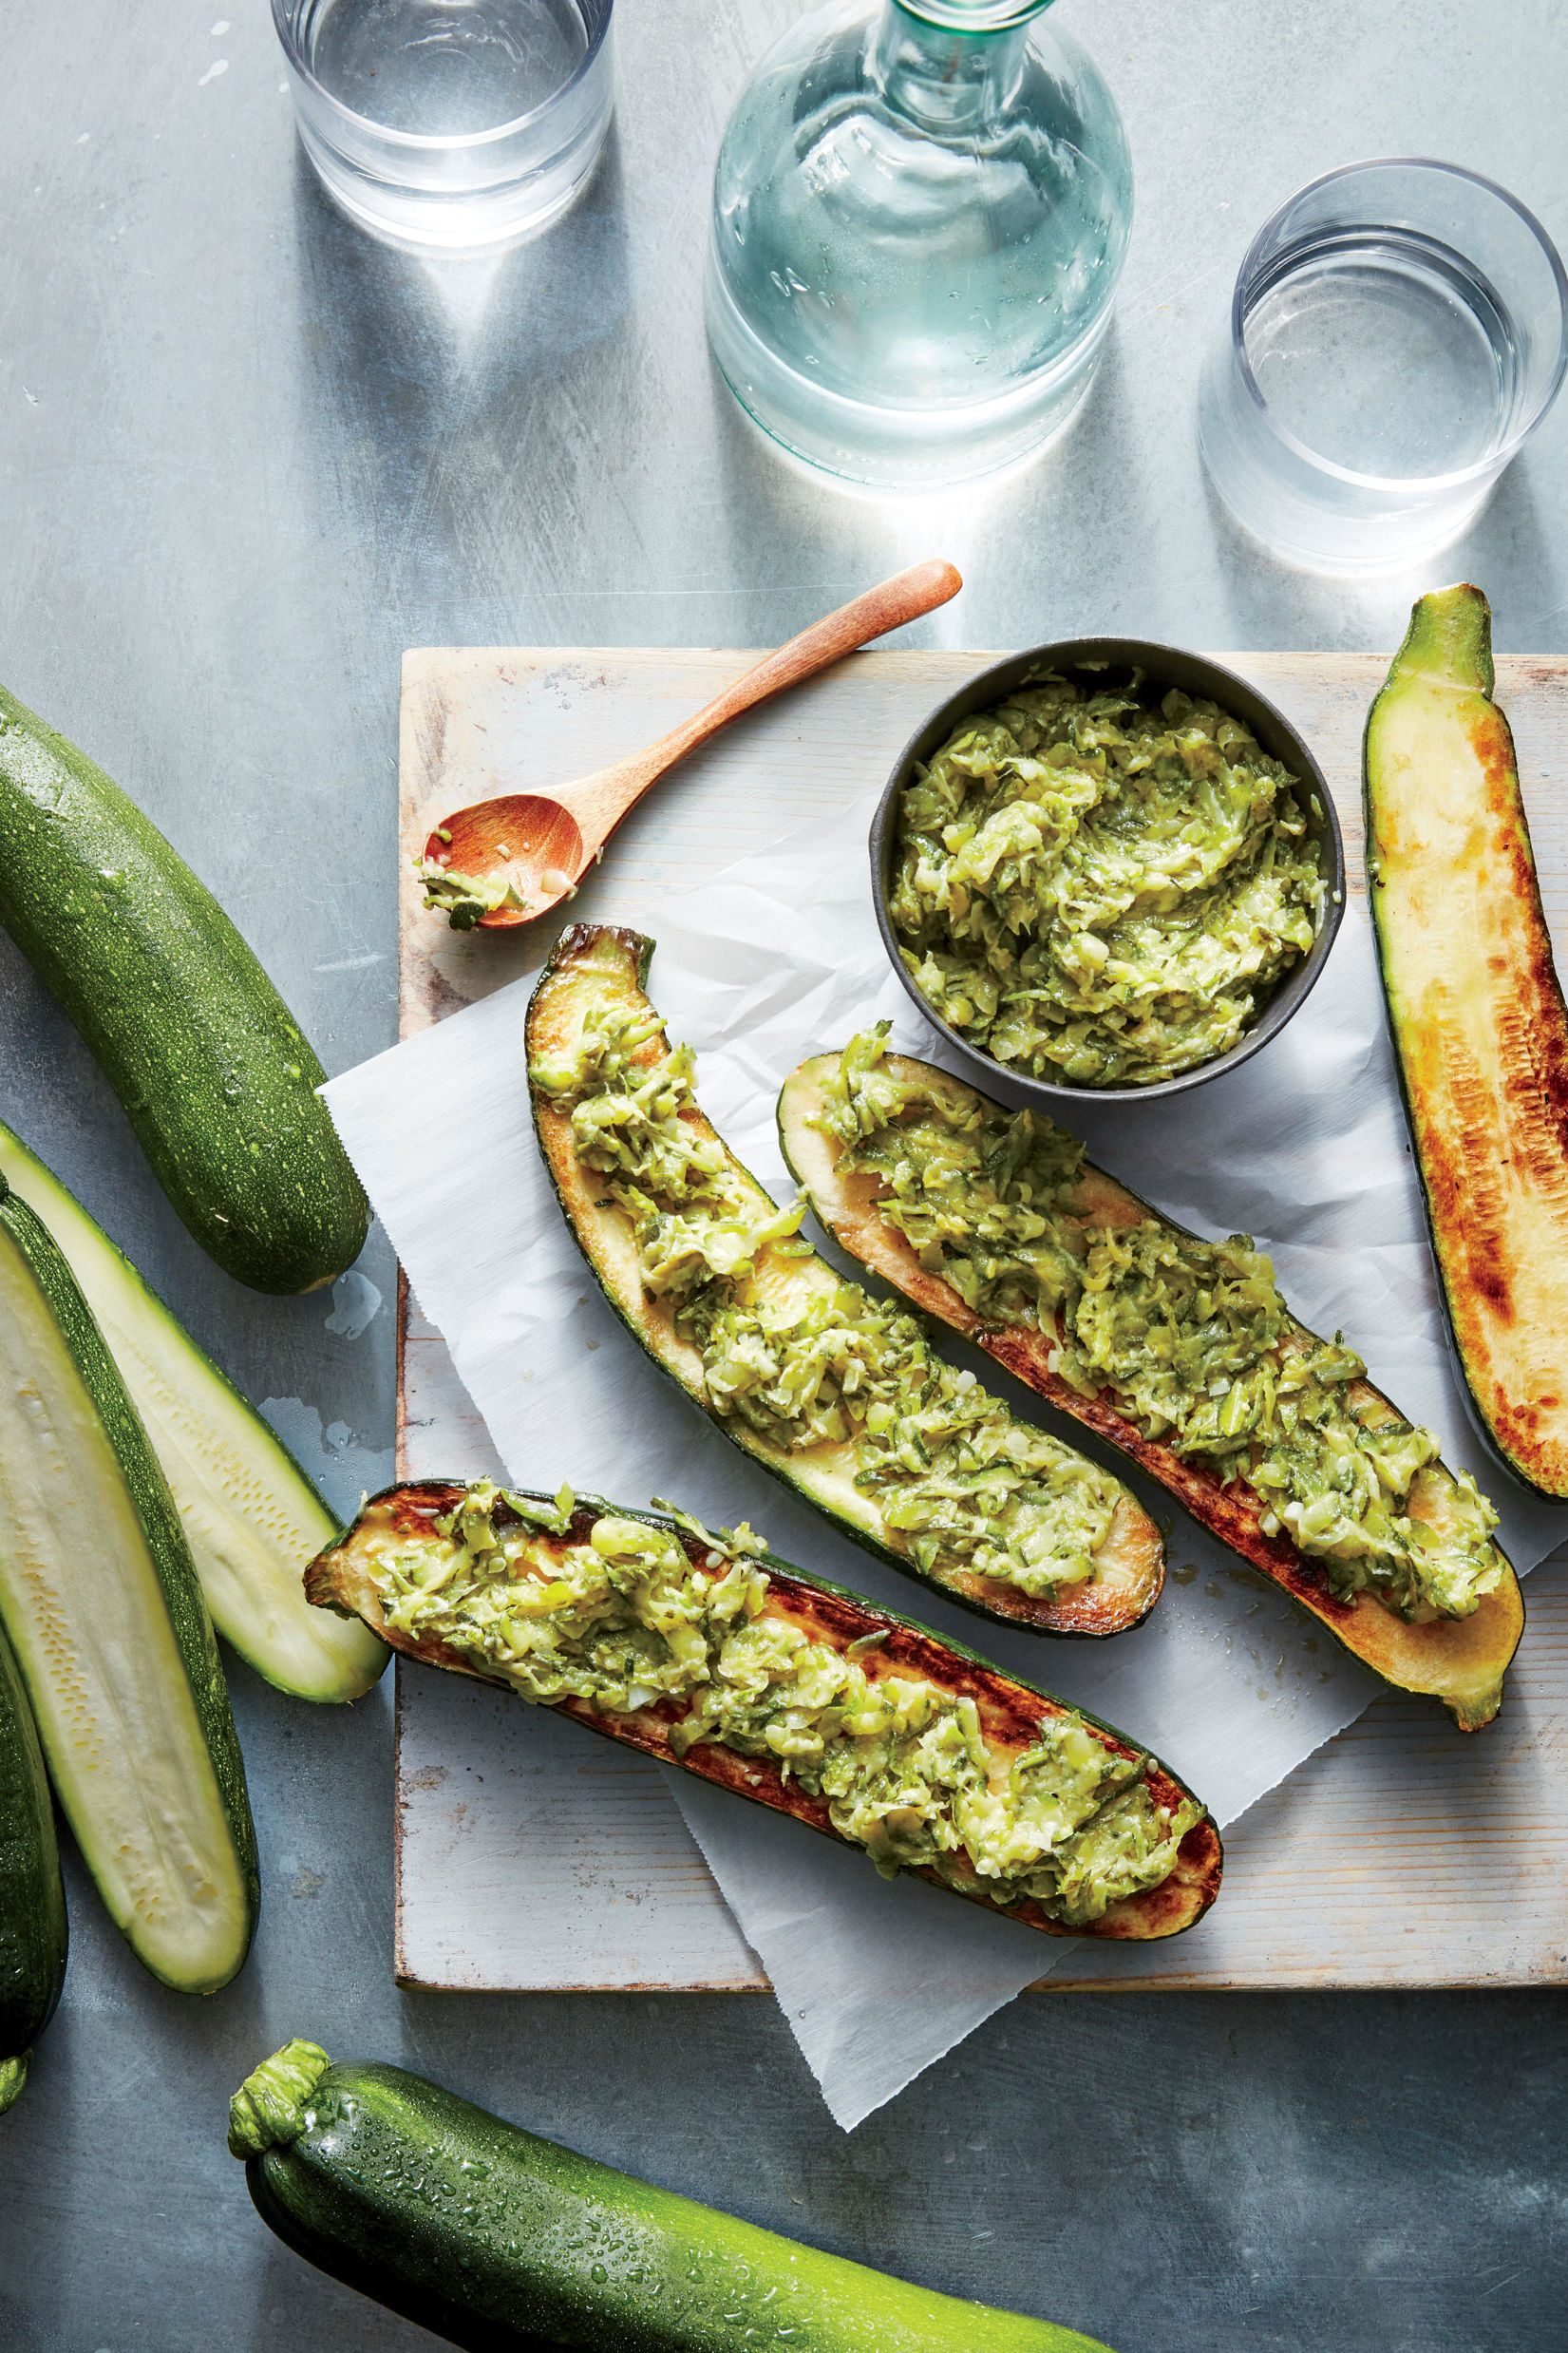 Why You Should Overcook Your Vegetables